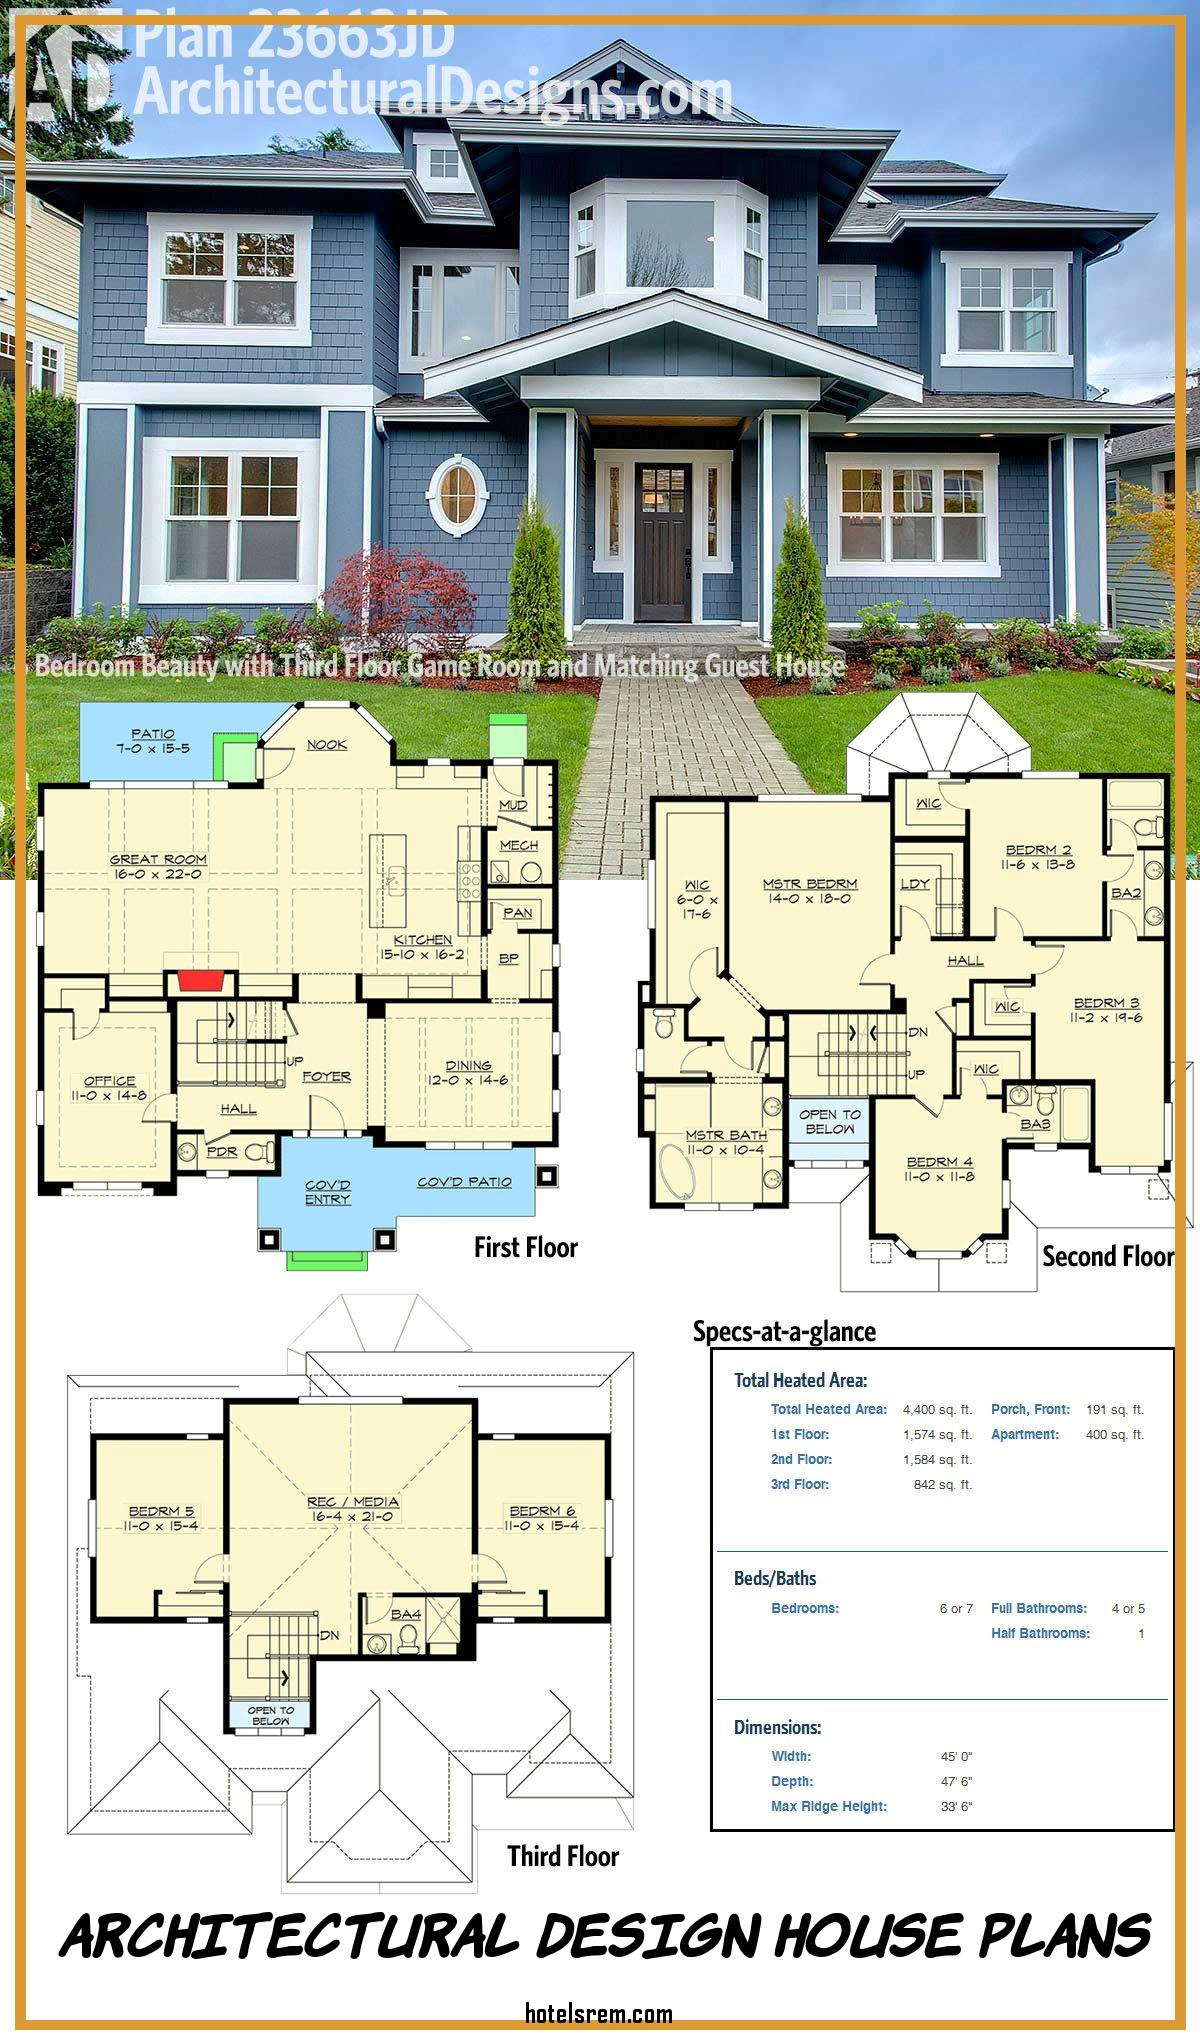 Architectural Design House Plans Awesome Architectural Designs House Plan Jd Not Only Gives You